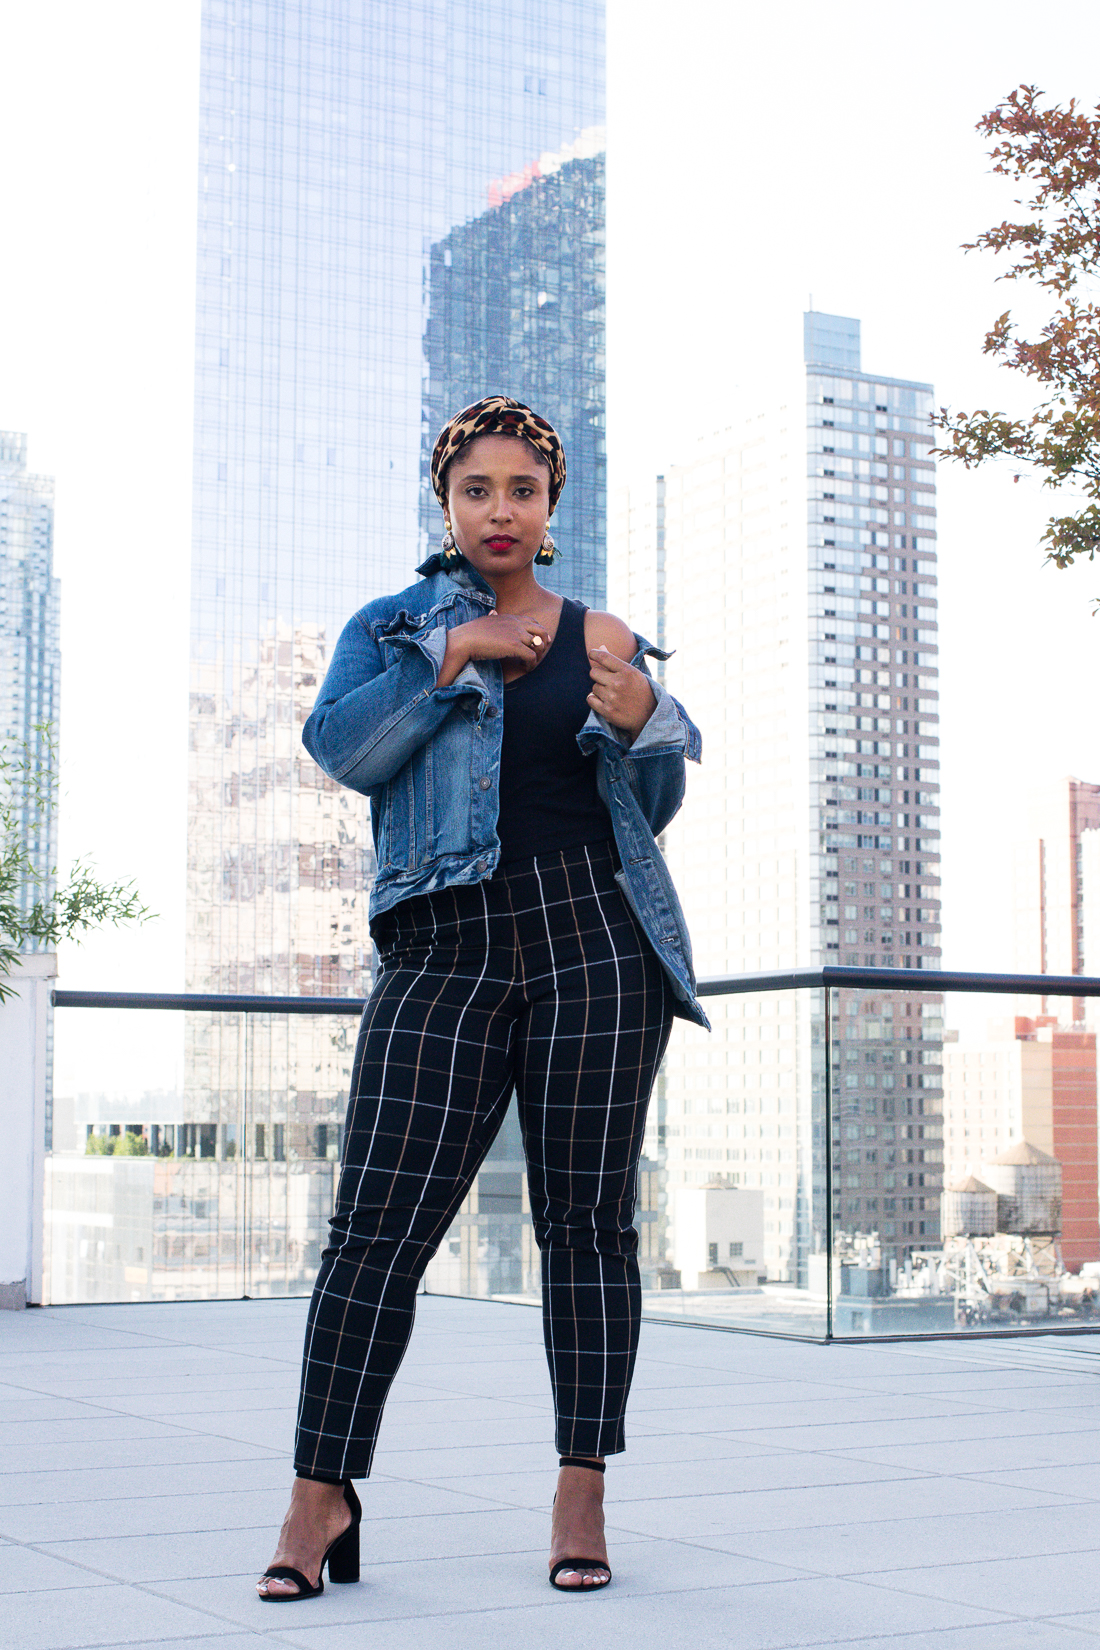 Top DC fashion blogger styling j.jill pieces